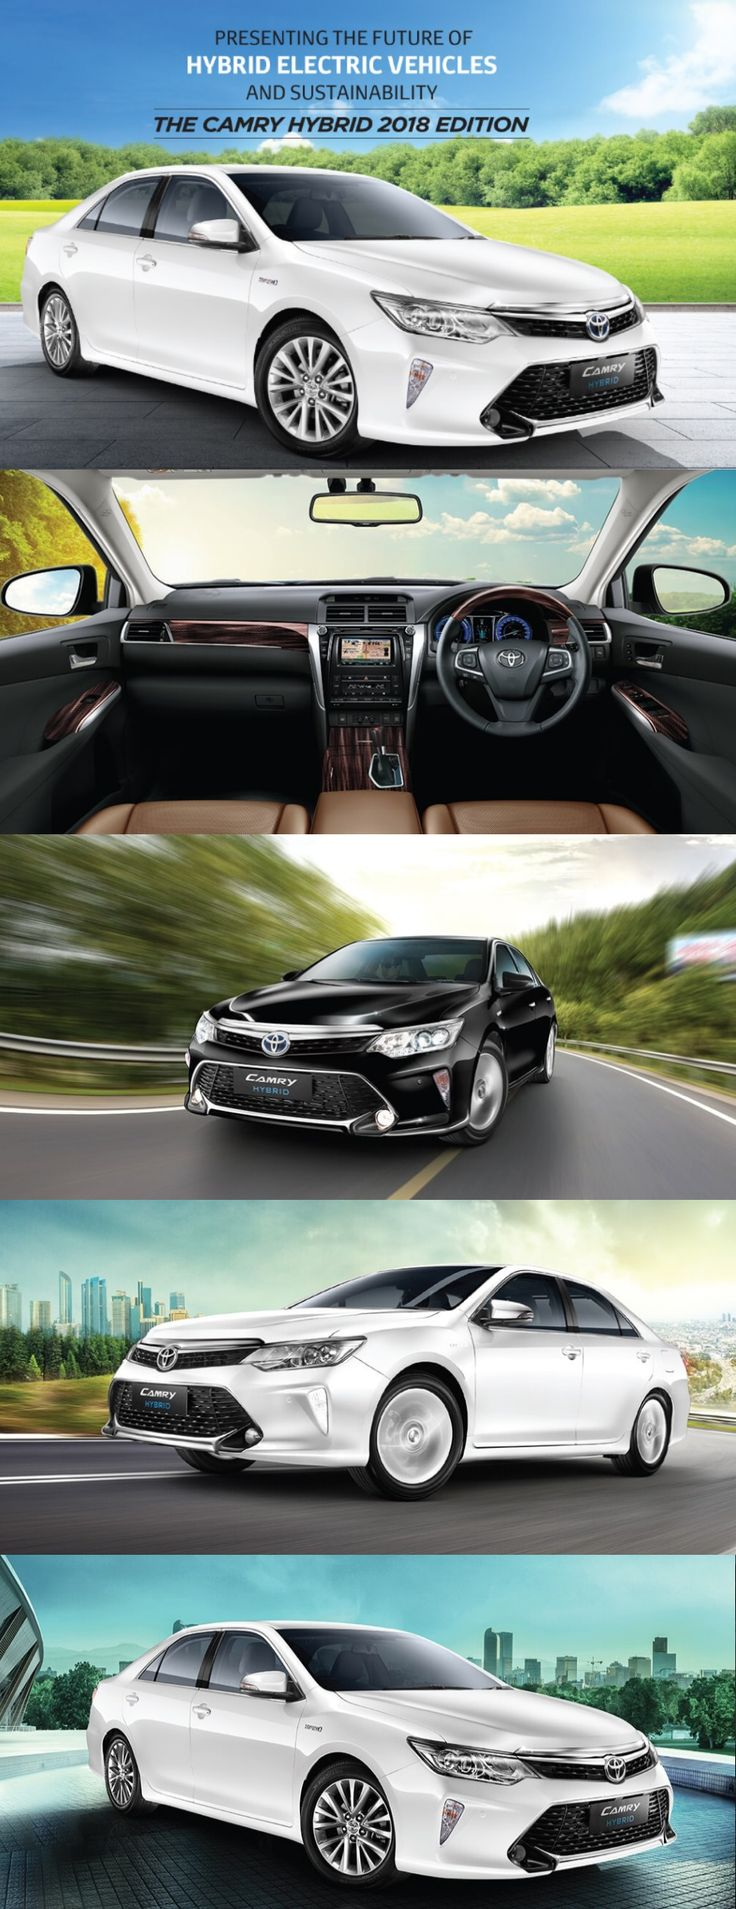 2018 Toyota Camry Hybrid Introduced Priced Rs. 37.22 Lakh